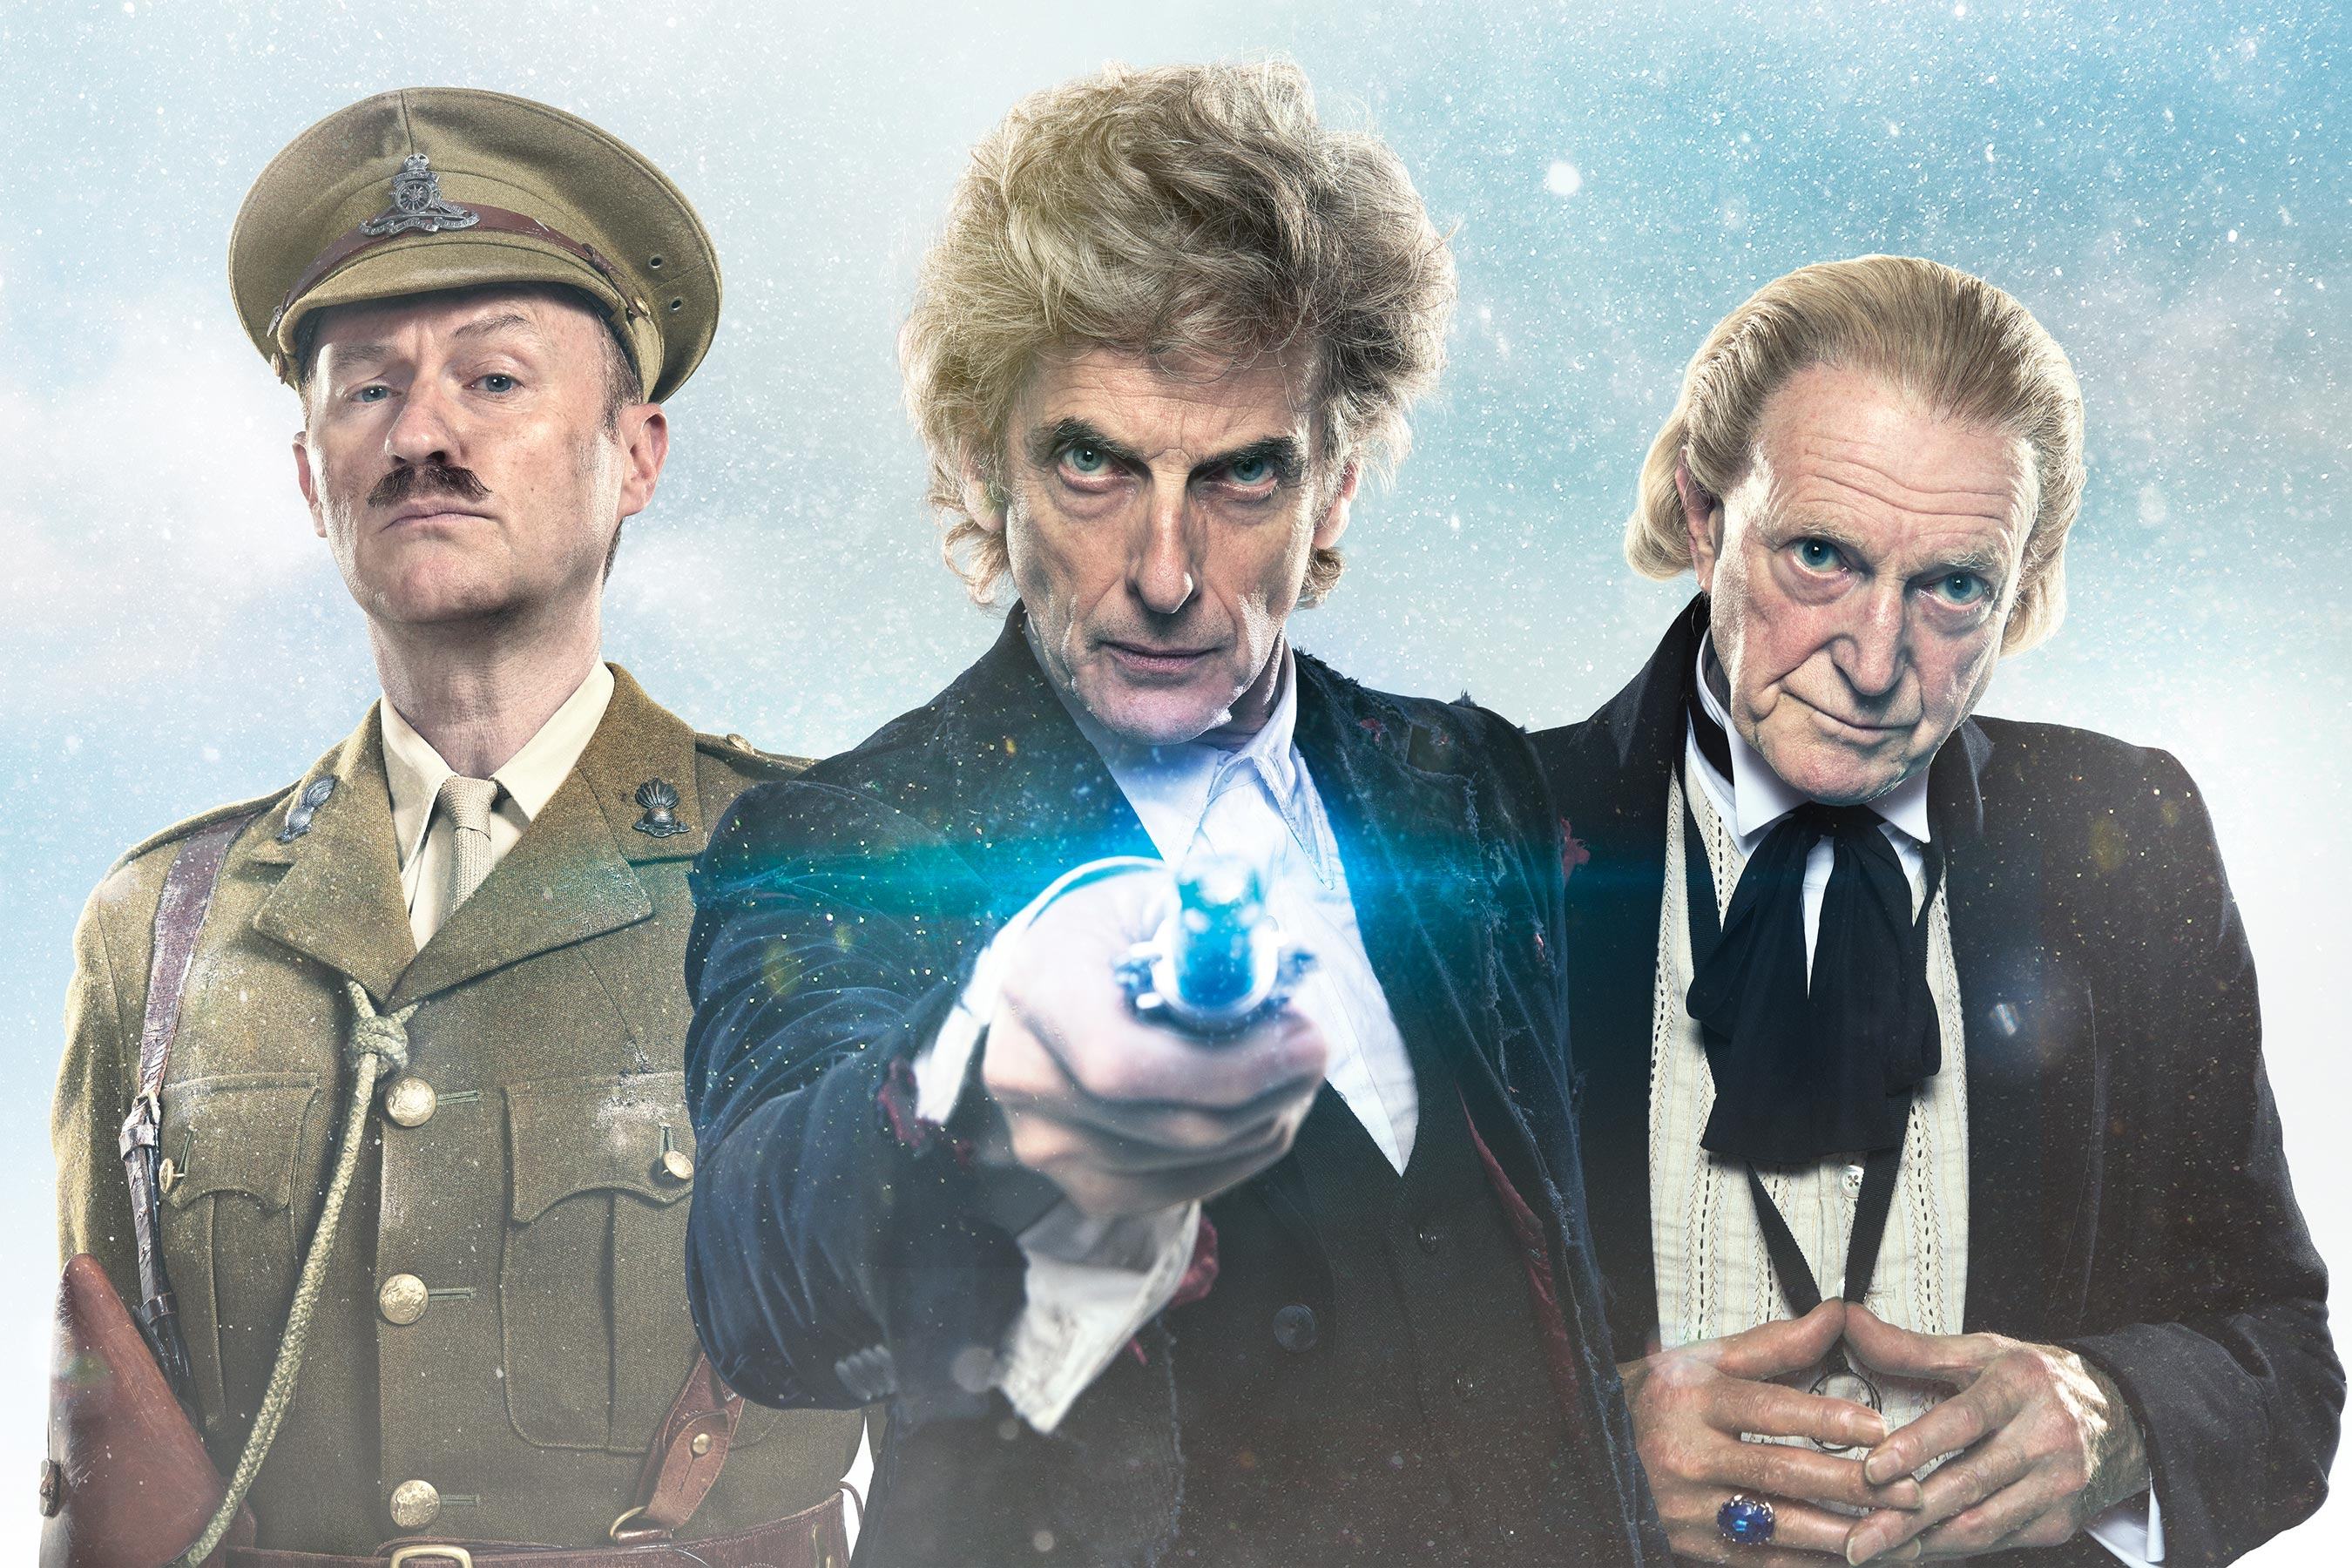 The First Doctor thinks the new TARDIS is 'hideous' in Doctor Who Christmas episode clip